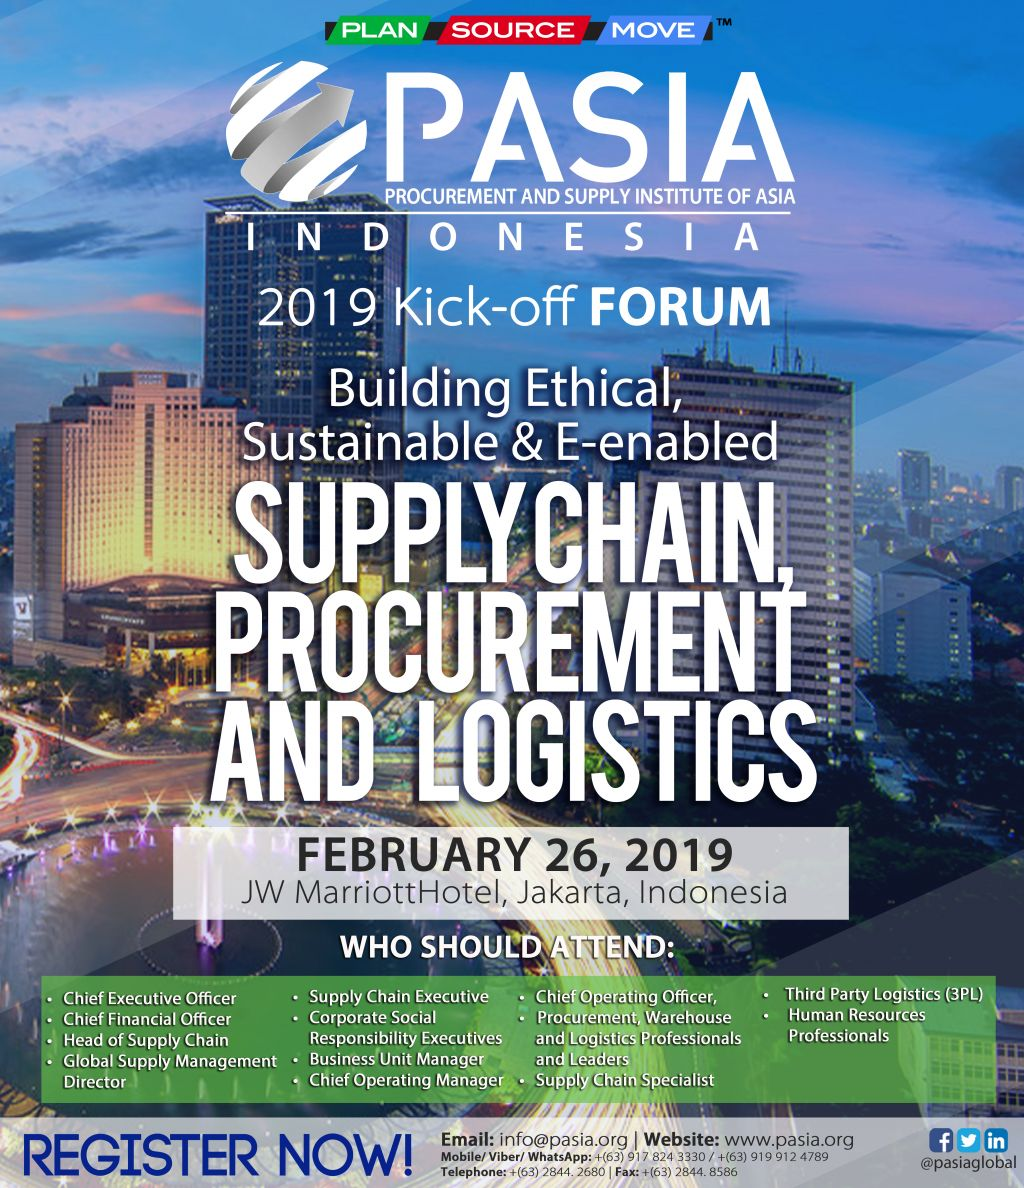 INDONESIA – PASIA | Procurement & Supply Institute of Asia